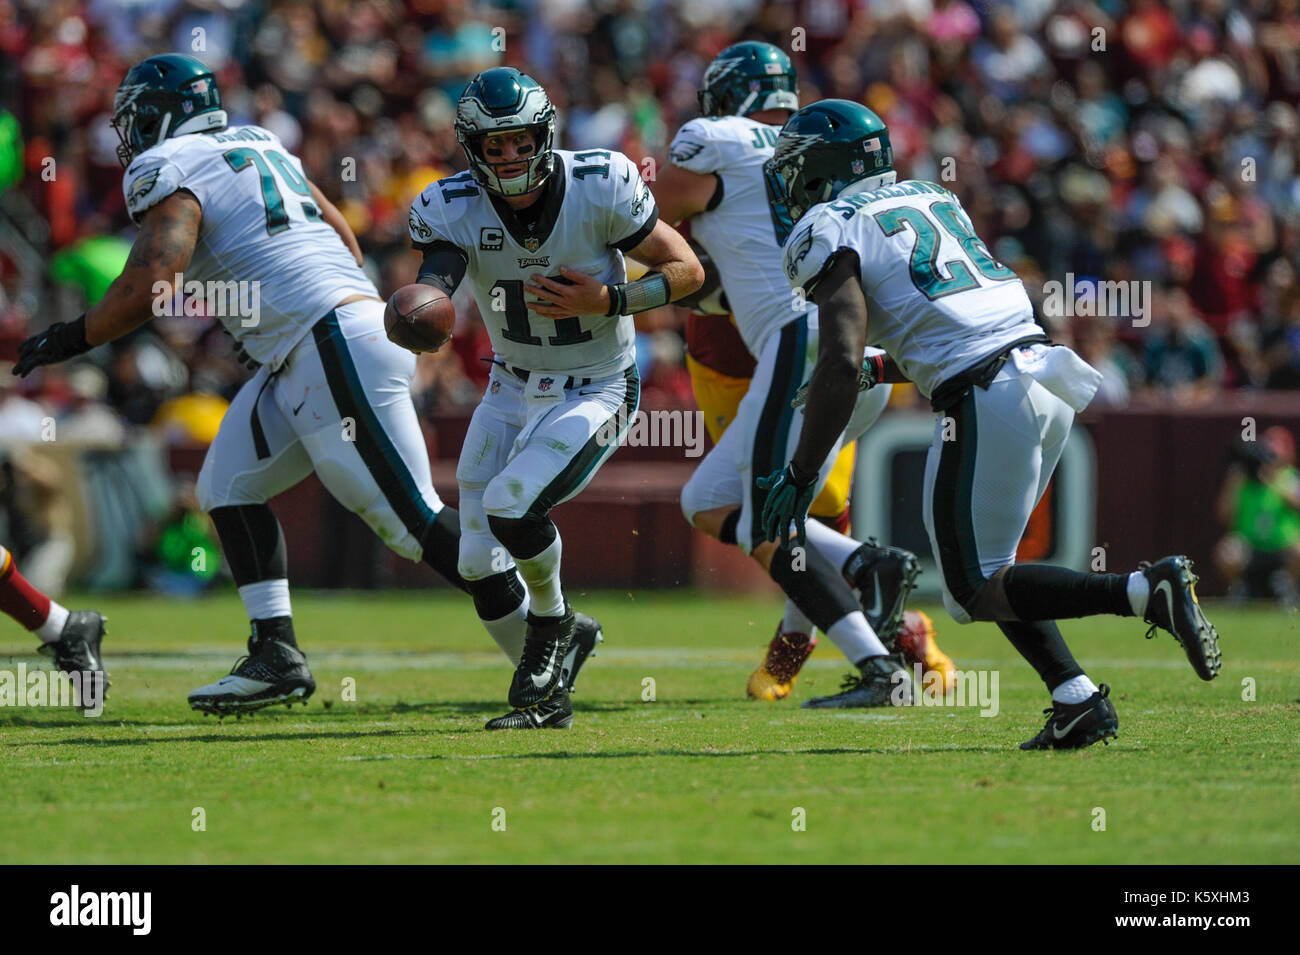 Landover, MD, USA. 10th Sep, 2017. Philadelphia Eagles quarterback Carson Wentz (11) hands off to Philadelphia Eagles running back Wendell Smallwood (28) during the season opening matchup between the Philadelphia Eagles and the Washington Redskins at FedEx Field in Landover, MD. Credit: csm/Alamy Live News - Stock Image